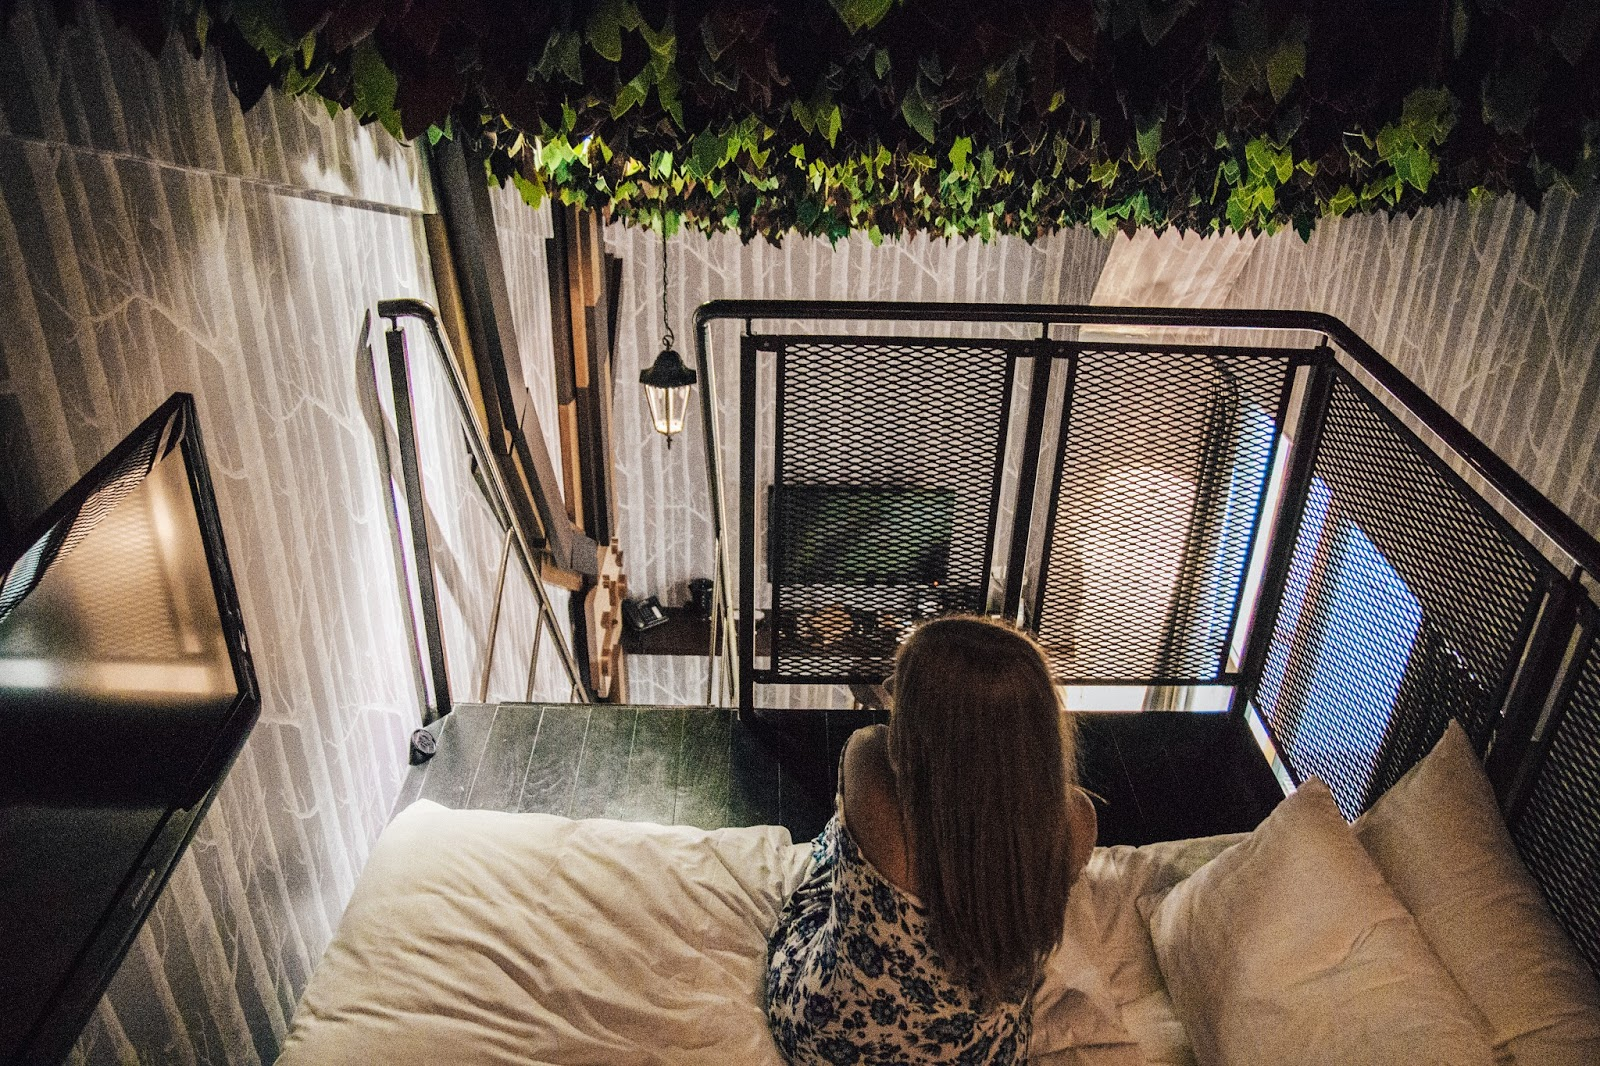 My Adventurous Experience At The Wanderlust Hotel in Singapore